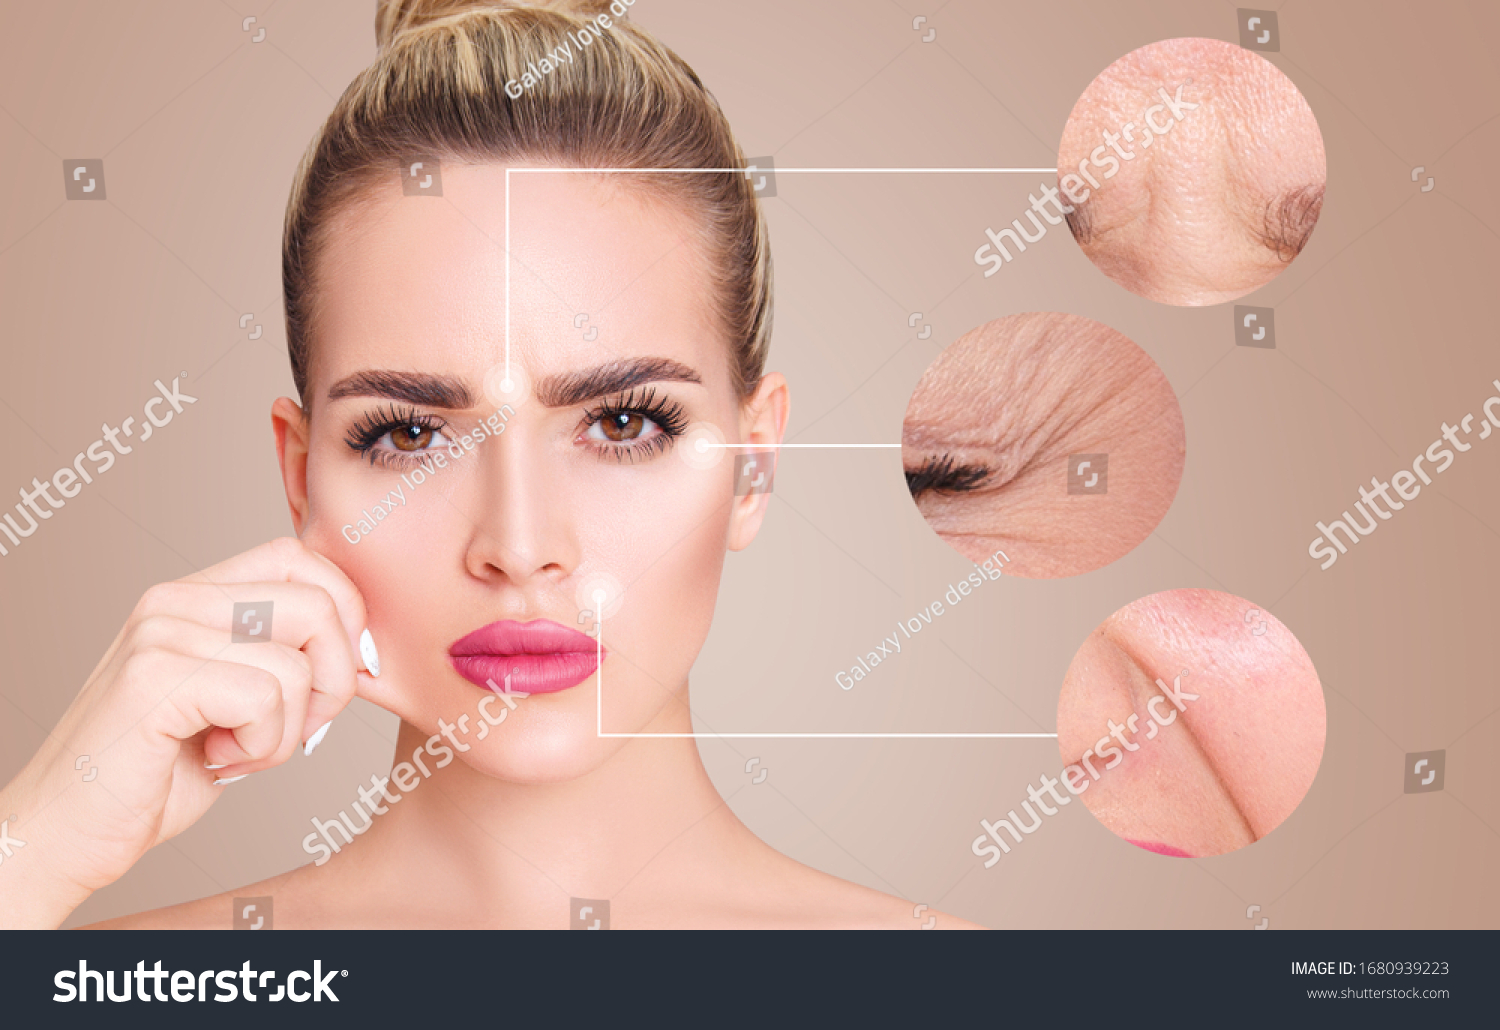 Circles with elderly wrinkled skin shows before and after lifting cosmetic procedure. Rejuvenation concept. #1680939223